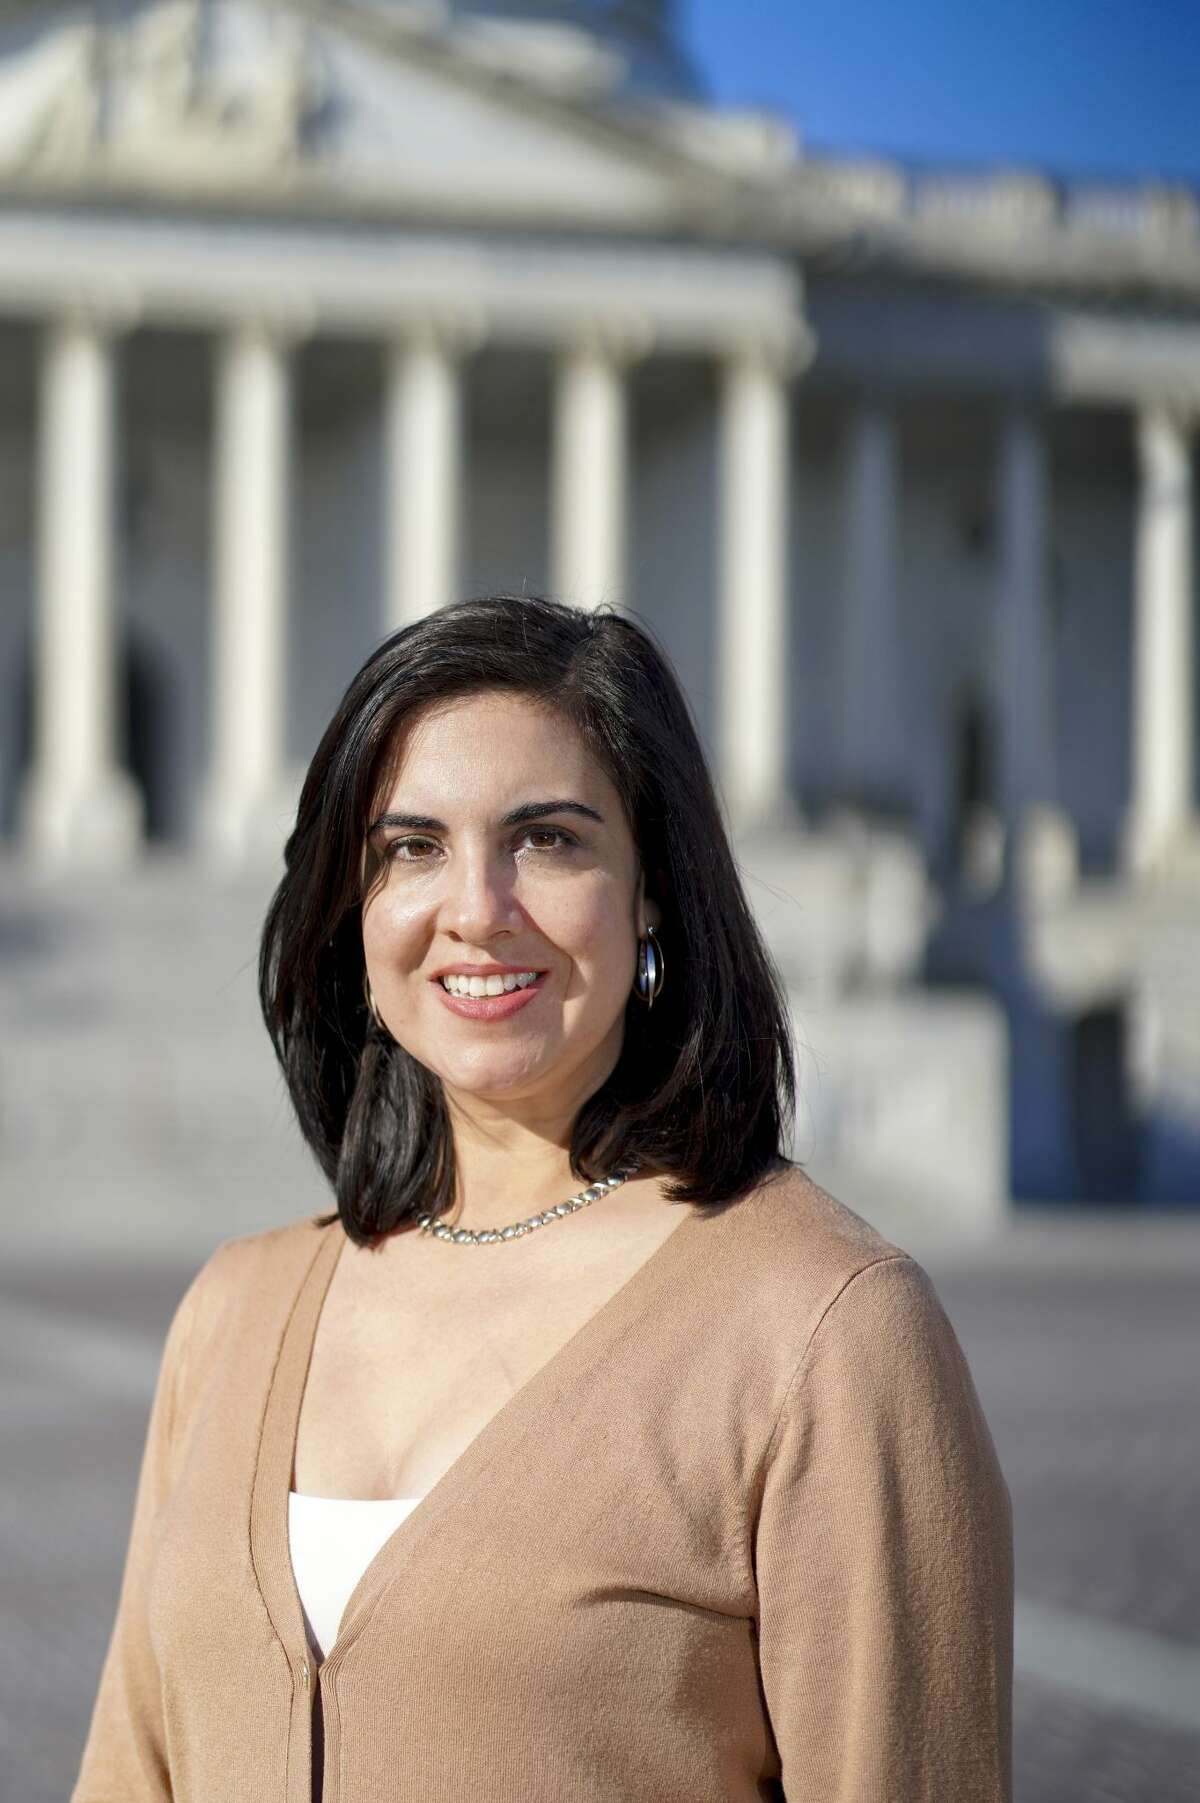 Rep. Nicole Malliotakis, R-Staten Island, has said she is likely to object to the certification of states' electoral votes on Wednesday Jan. 6., 2021. MUST CREDIT: Washington Post photo by Bonnie Jo Mount